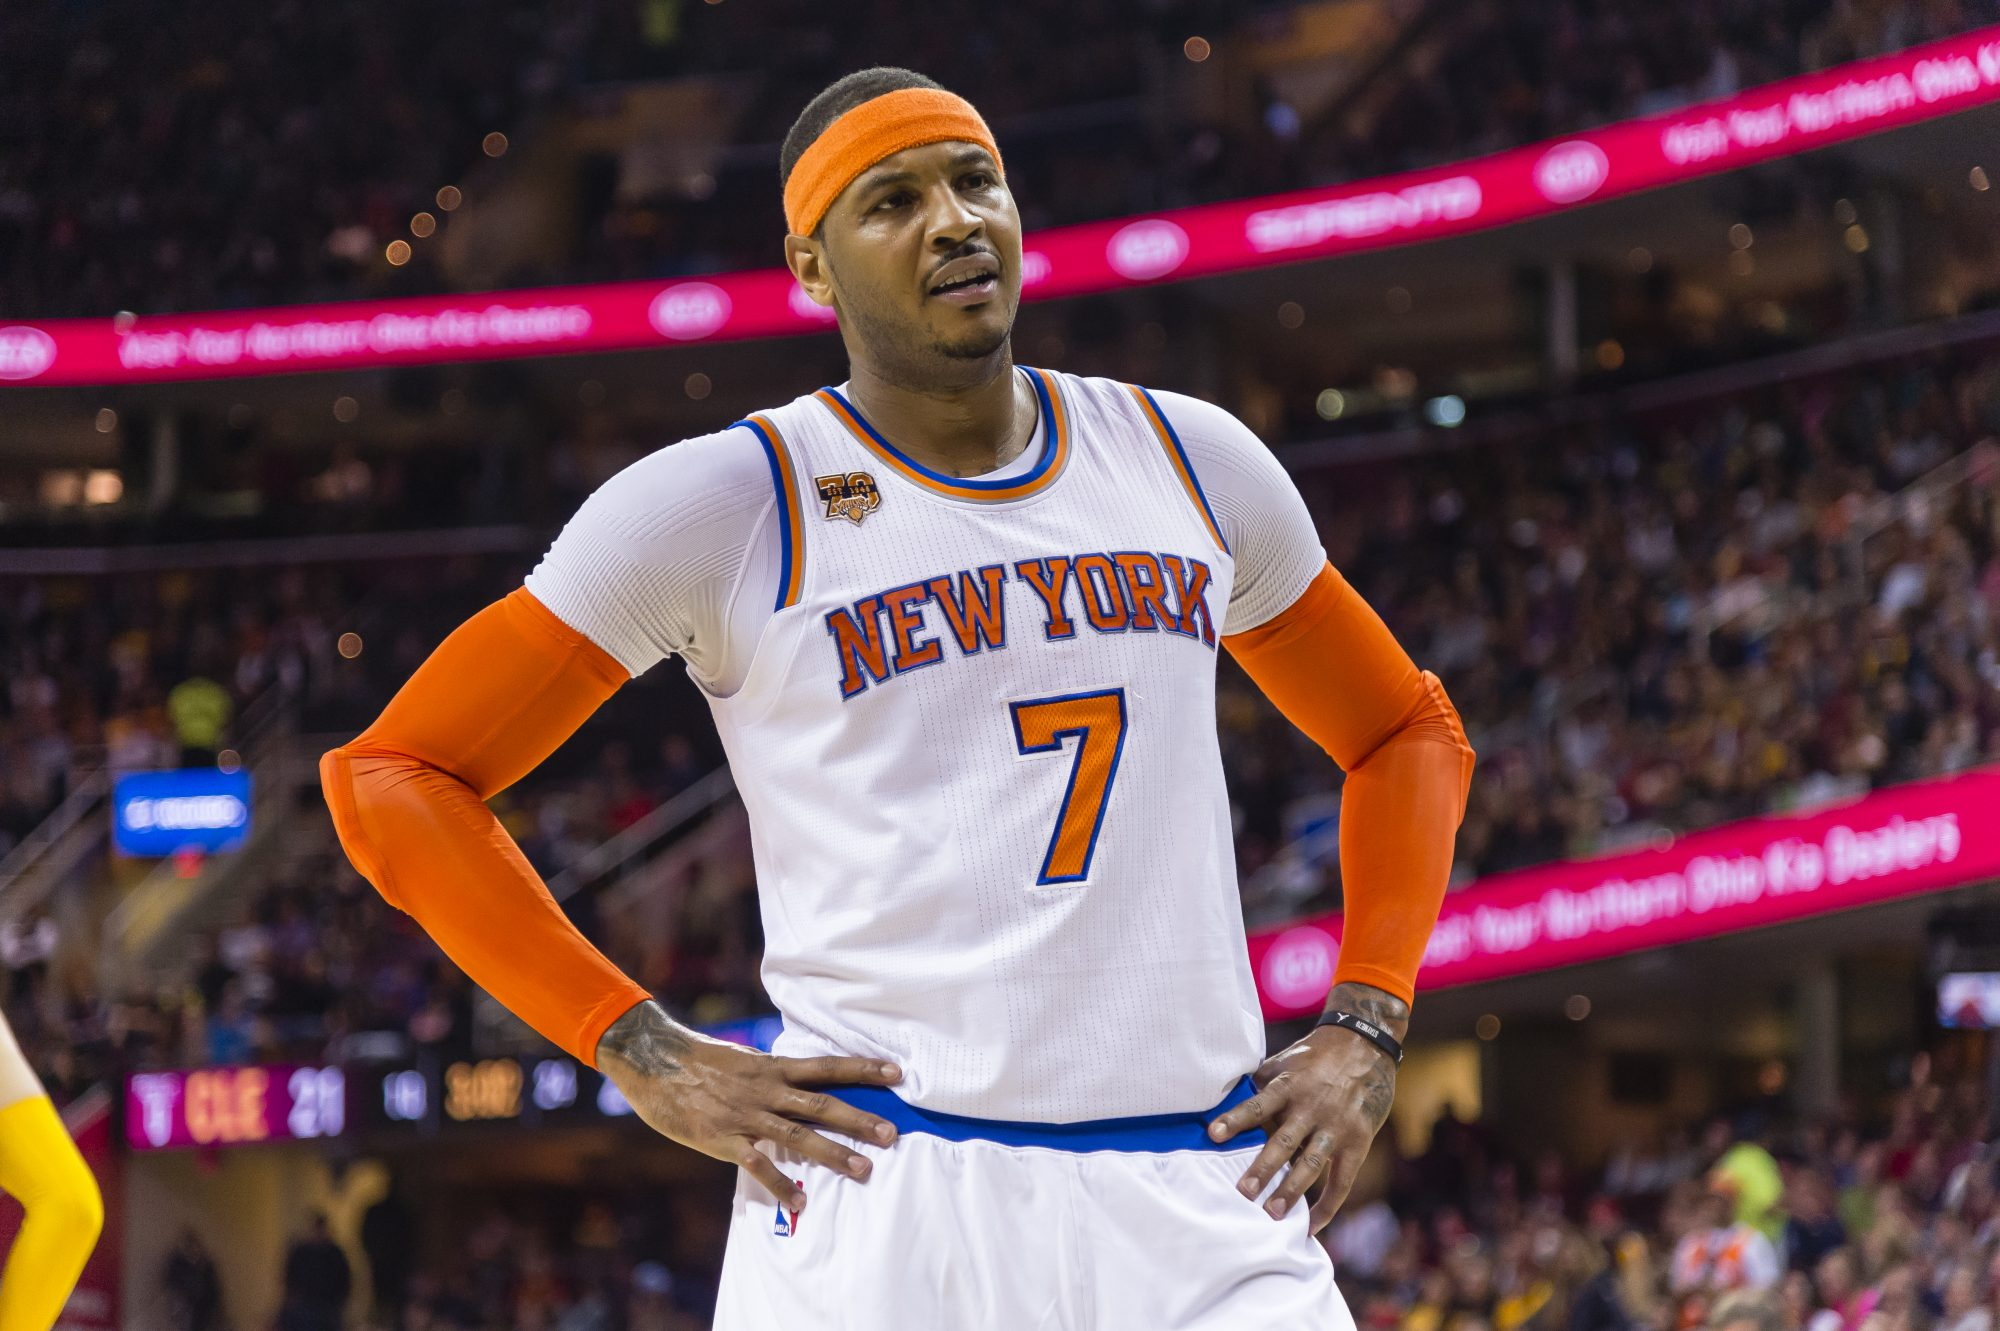 New York Knicks: Like it or Not, Carmelo Anthony Likely Isn't Going Anywhere 2